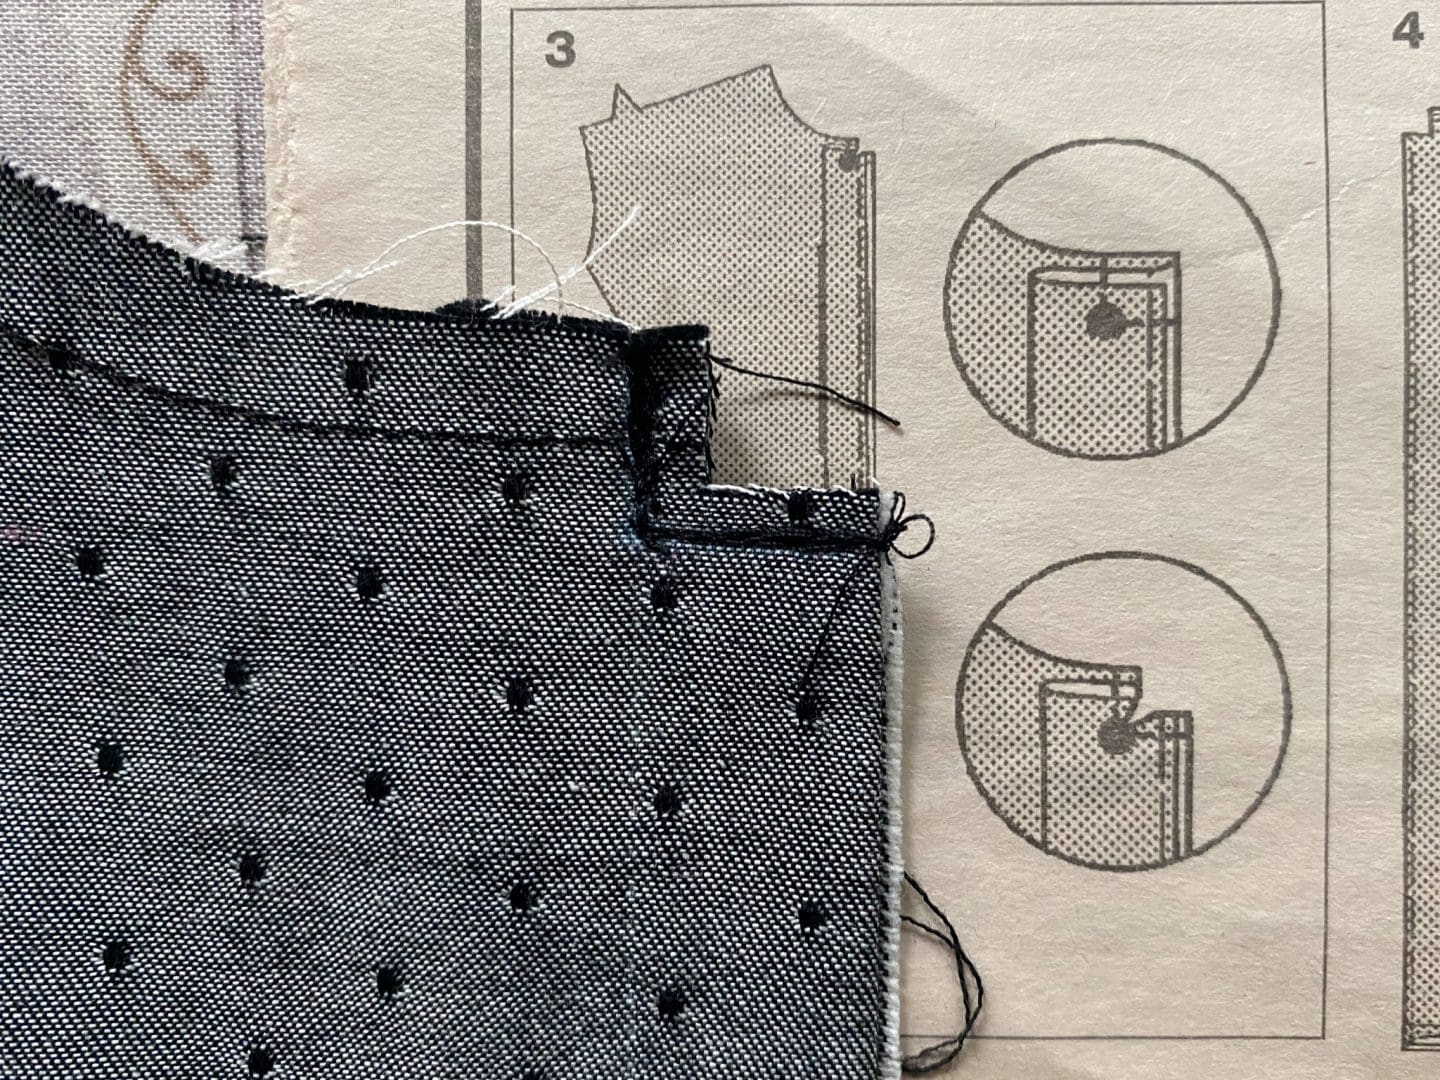 Image of Simplicity 1941 front pattern piece wrong side up showing where to clip into the placket to create the top of the placket